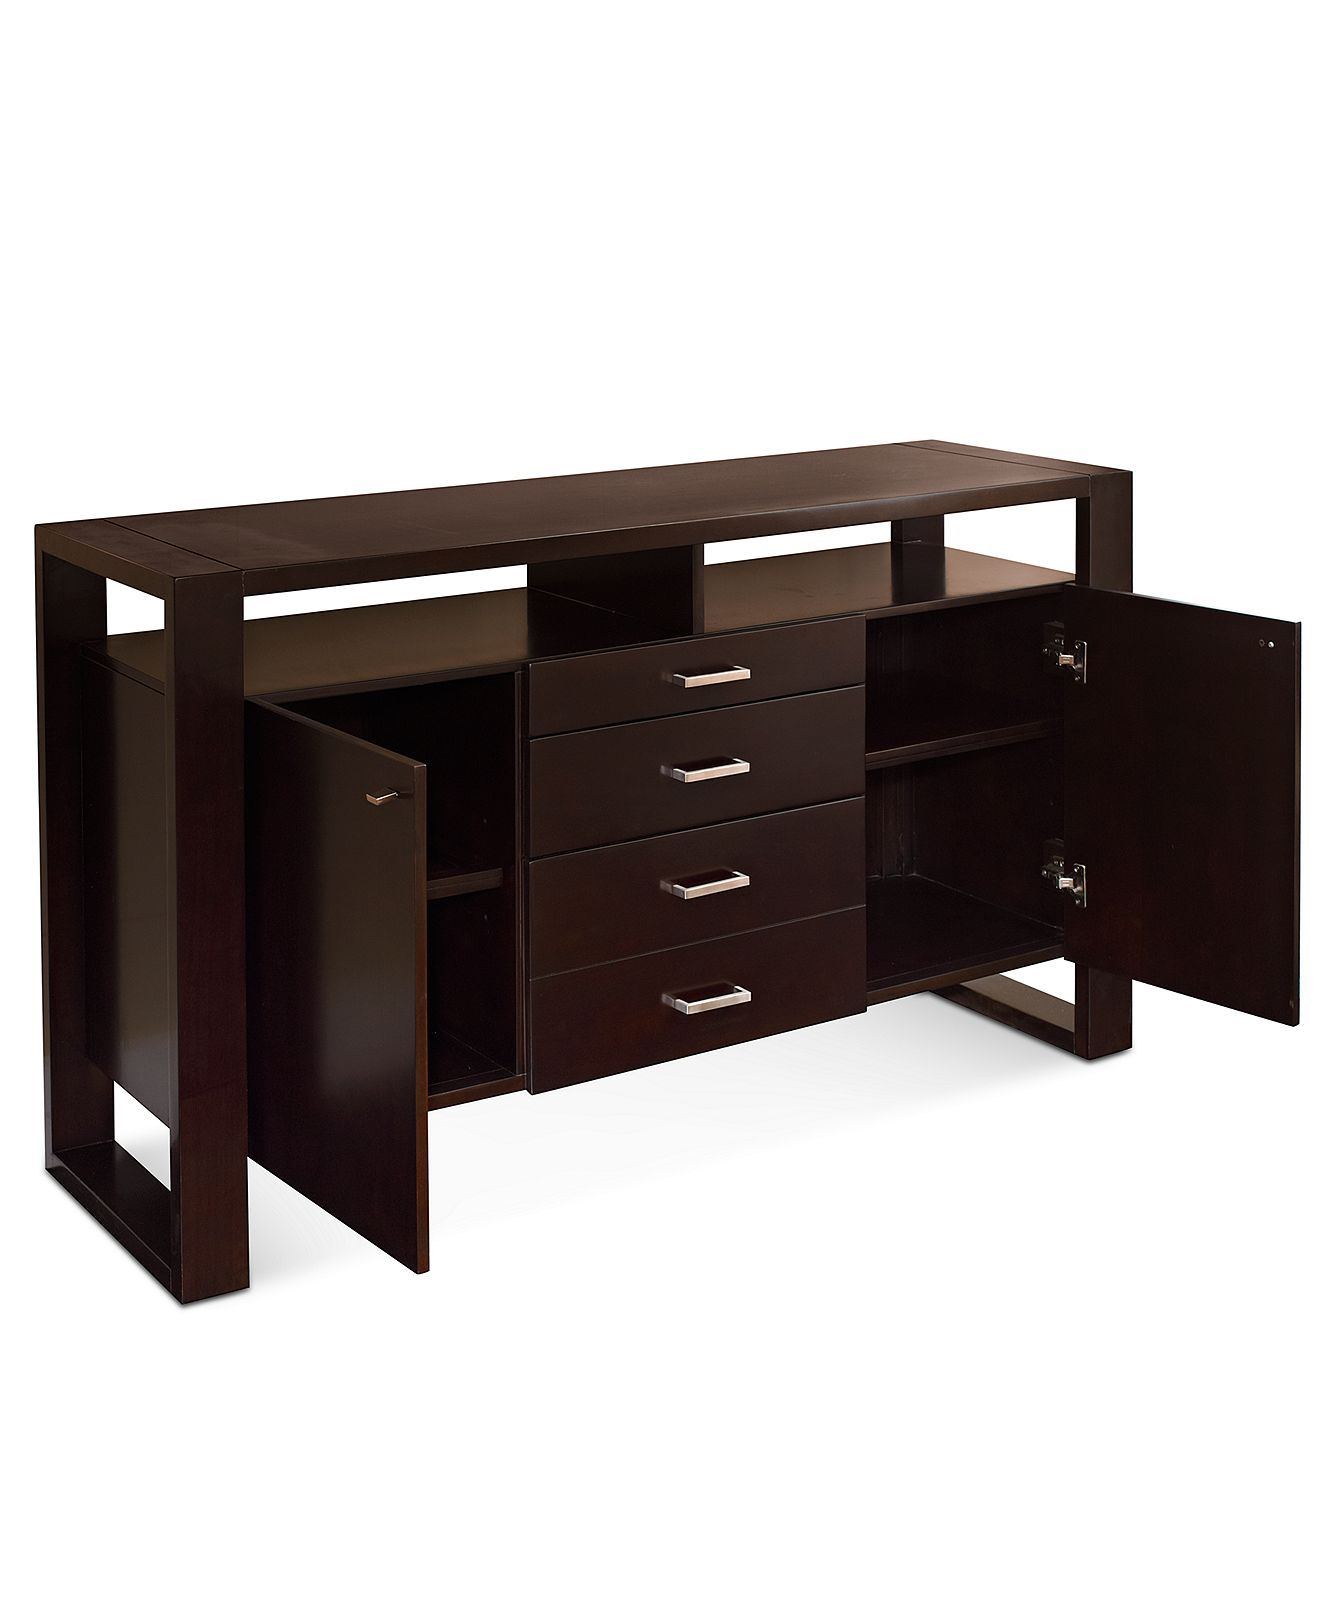 Belaire Dining Room Buffet Sideboard